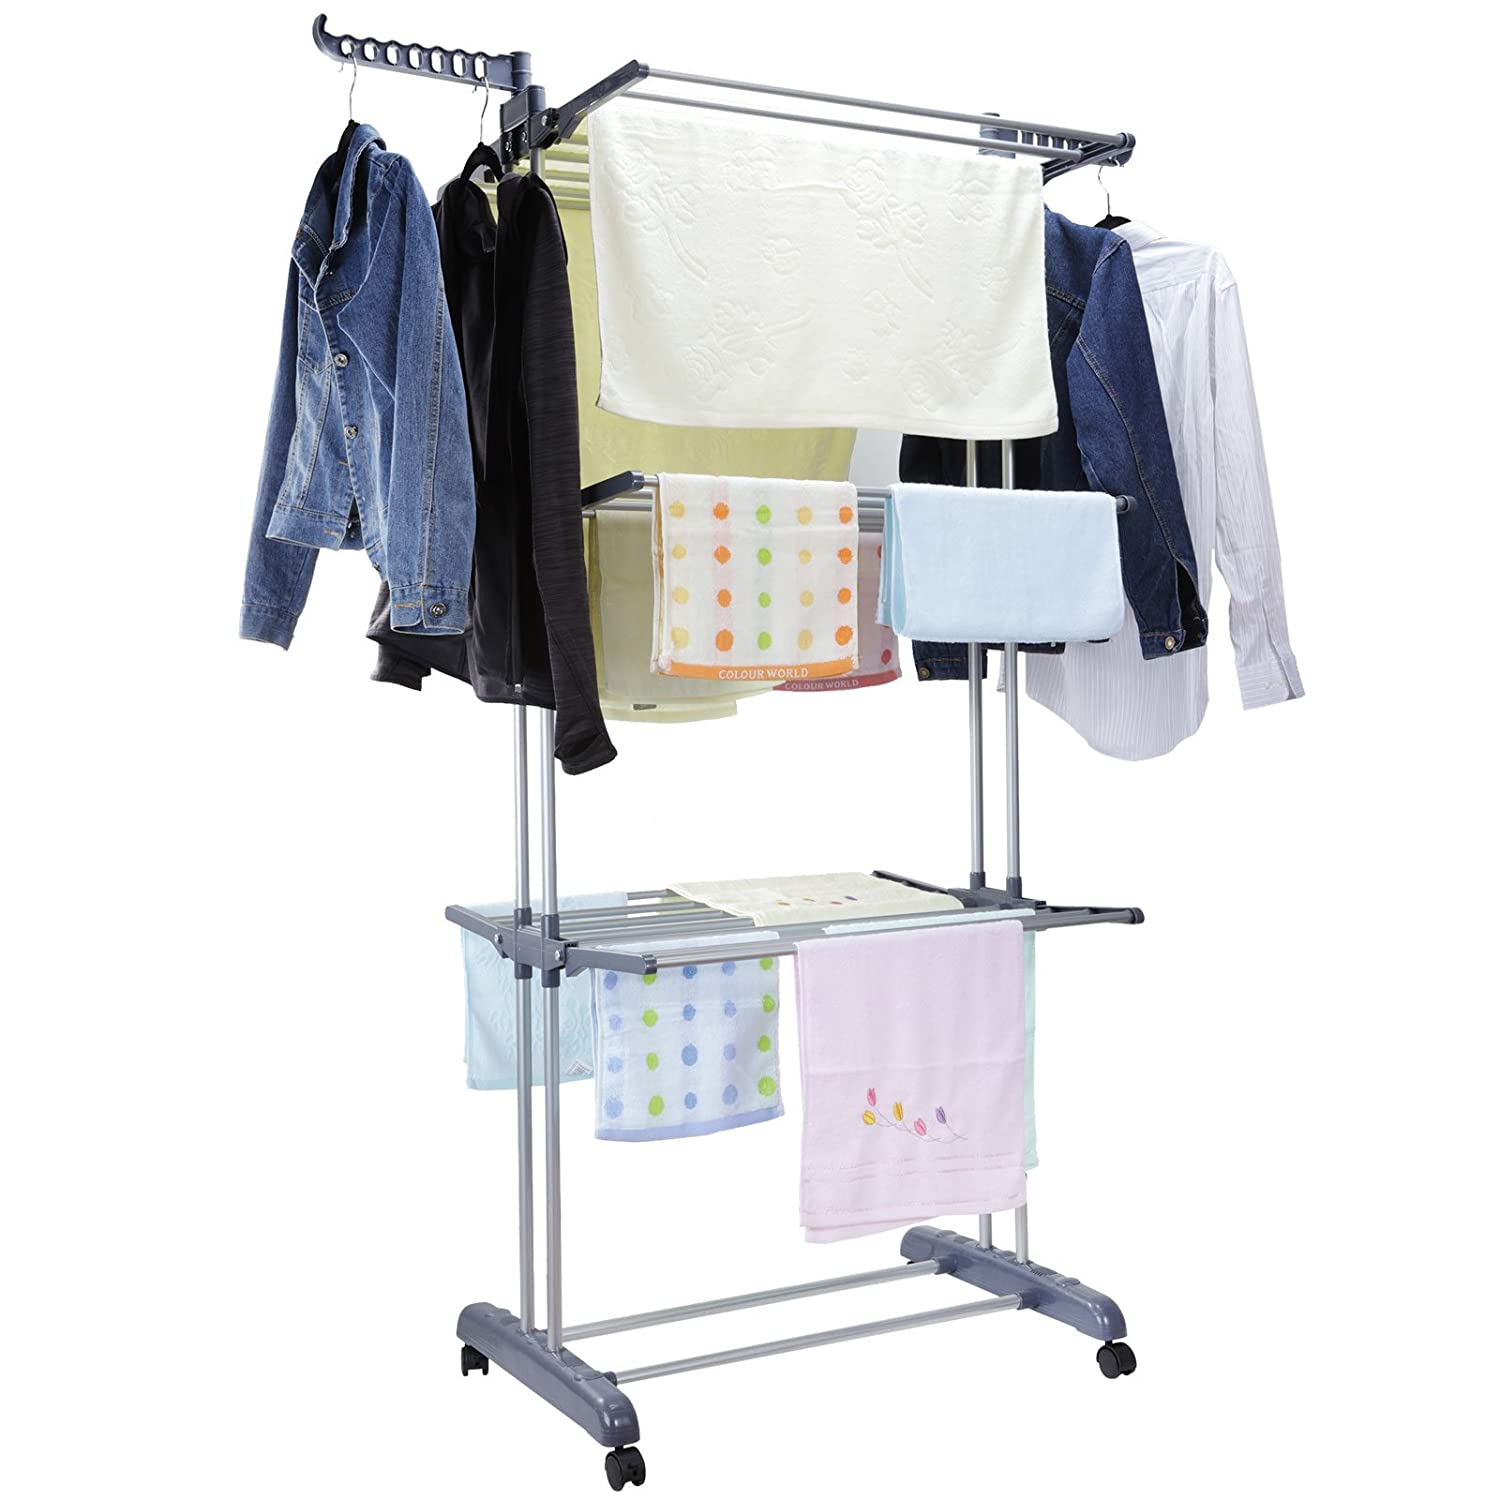 Voilamart Foldable Clothes Drying Rack 3 Tier Dryer Hanger Airer